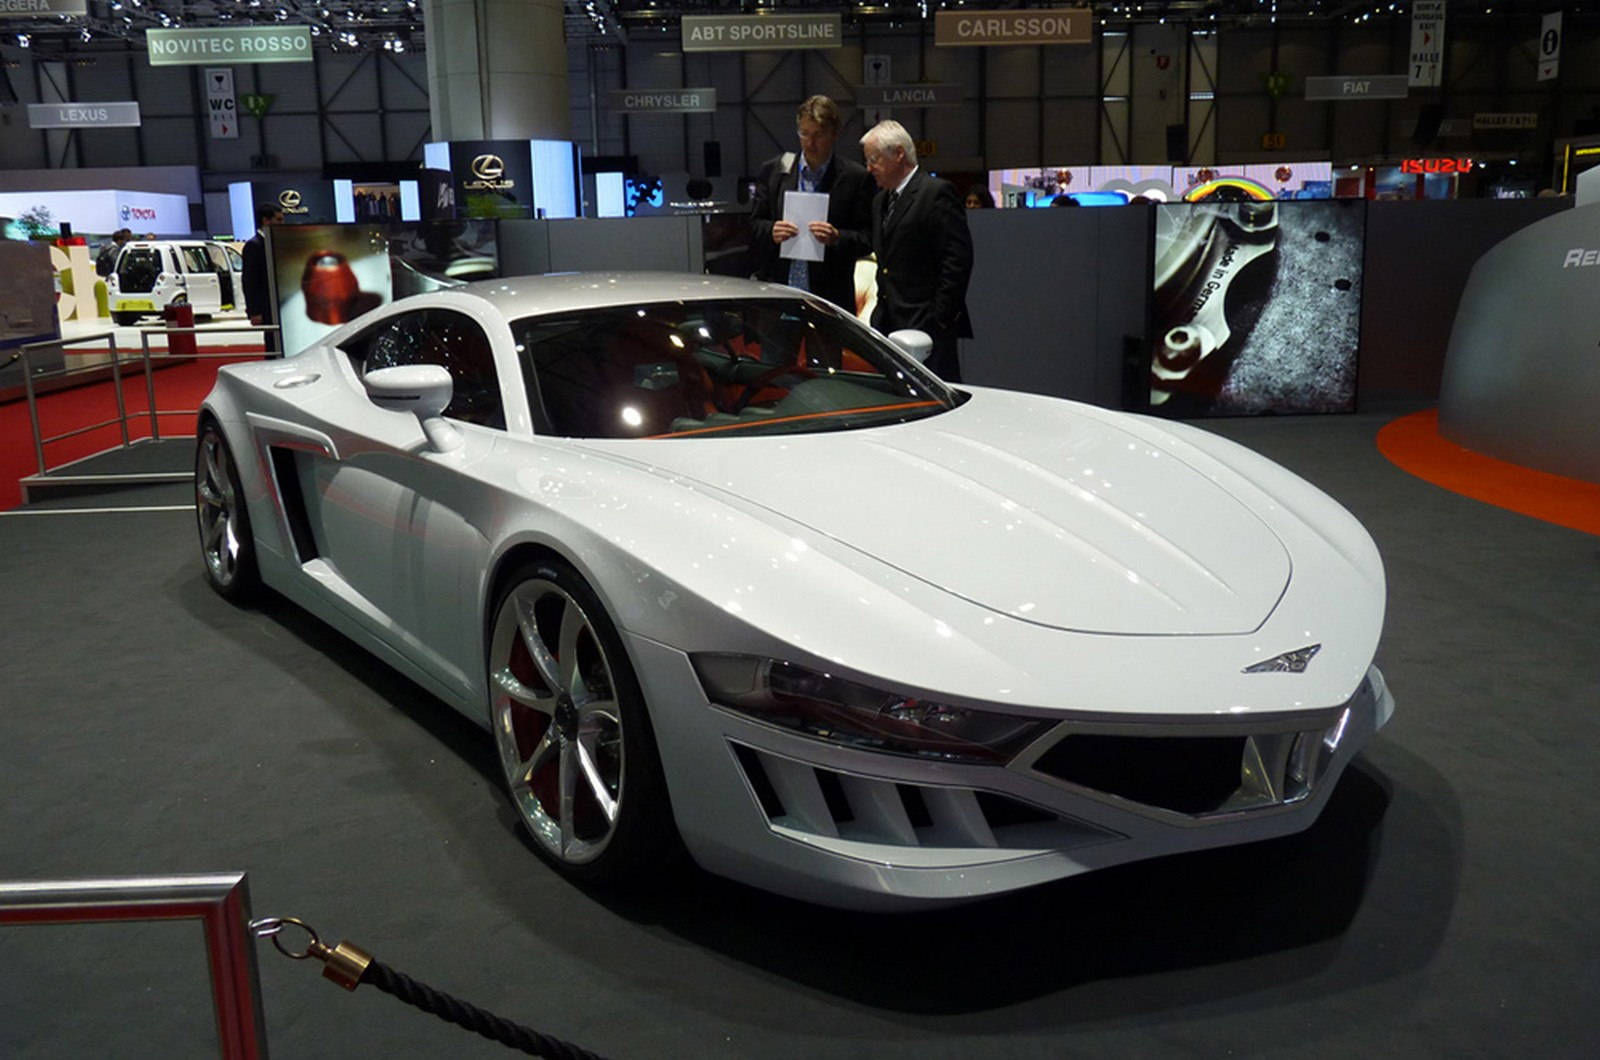 Presented at the 2010 Geneva Motor Show, it was a heavily modified Audi R8 that was to be called X10V